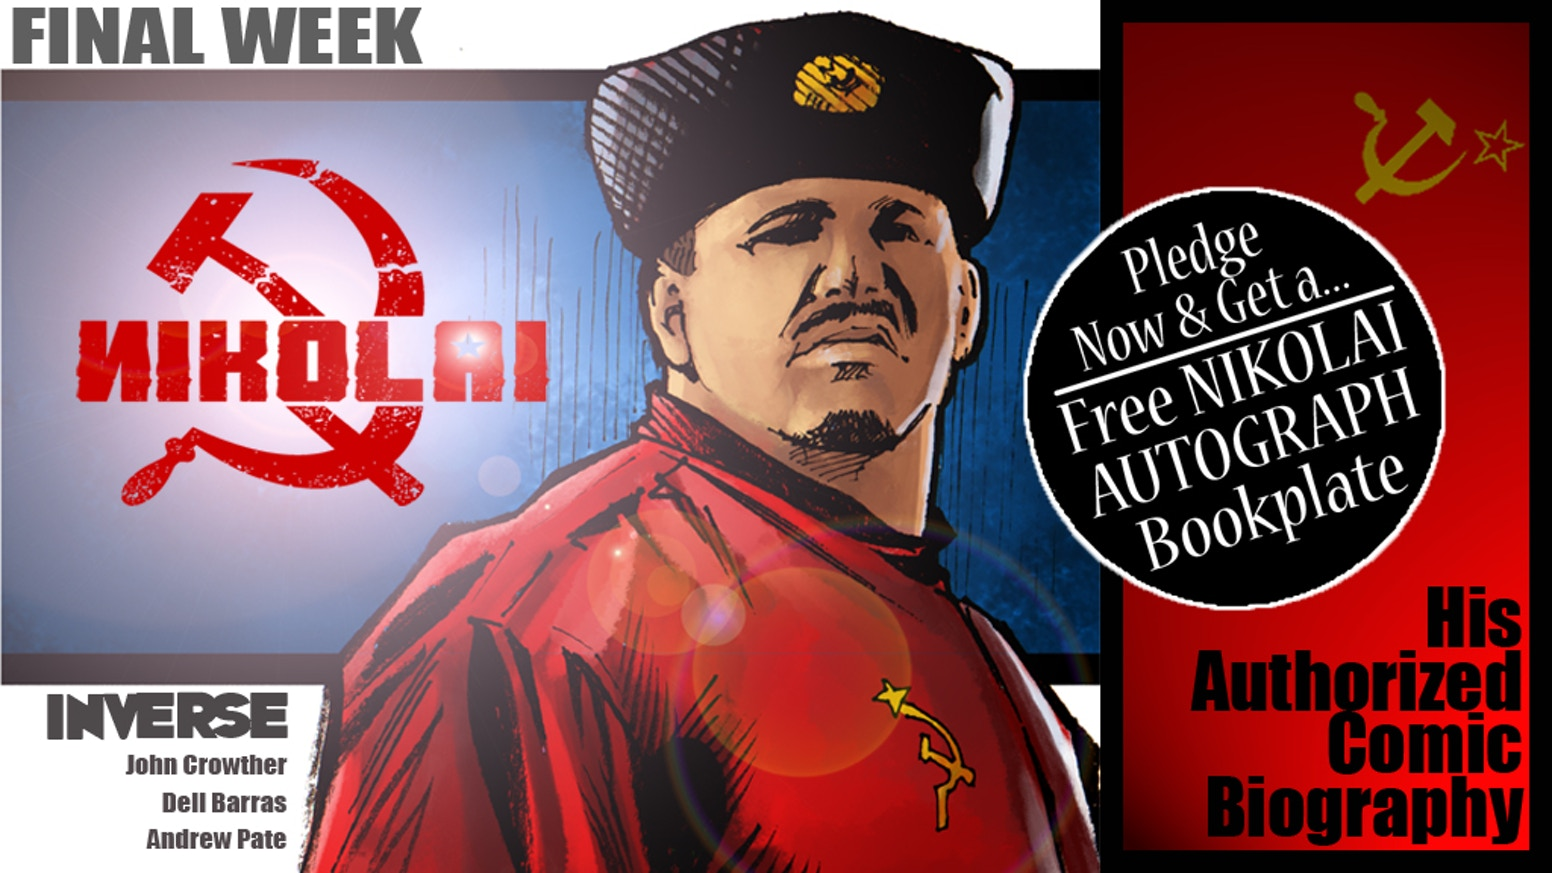 The real-life tale of Nikolai Volkoff - his family history, his escape from the Soviet Bloc, & his rise to wrestling fame in the USA!